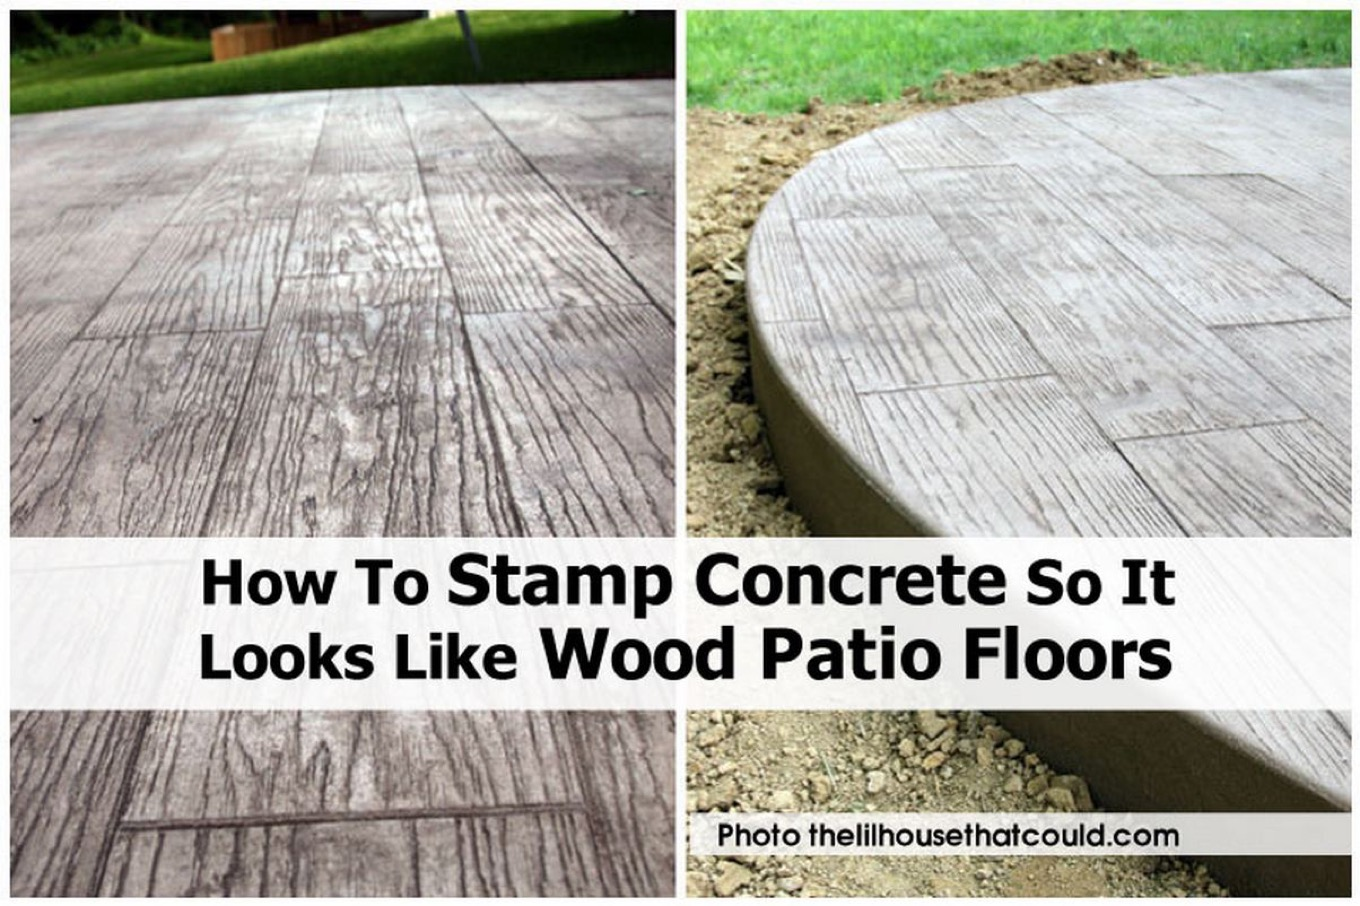 Stamped Concrete That Looks Like Wood Planks : How to stamp concrete so it looks like wood patio floors